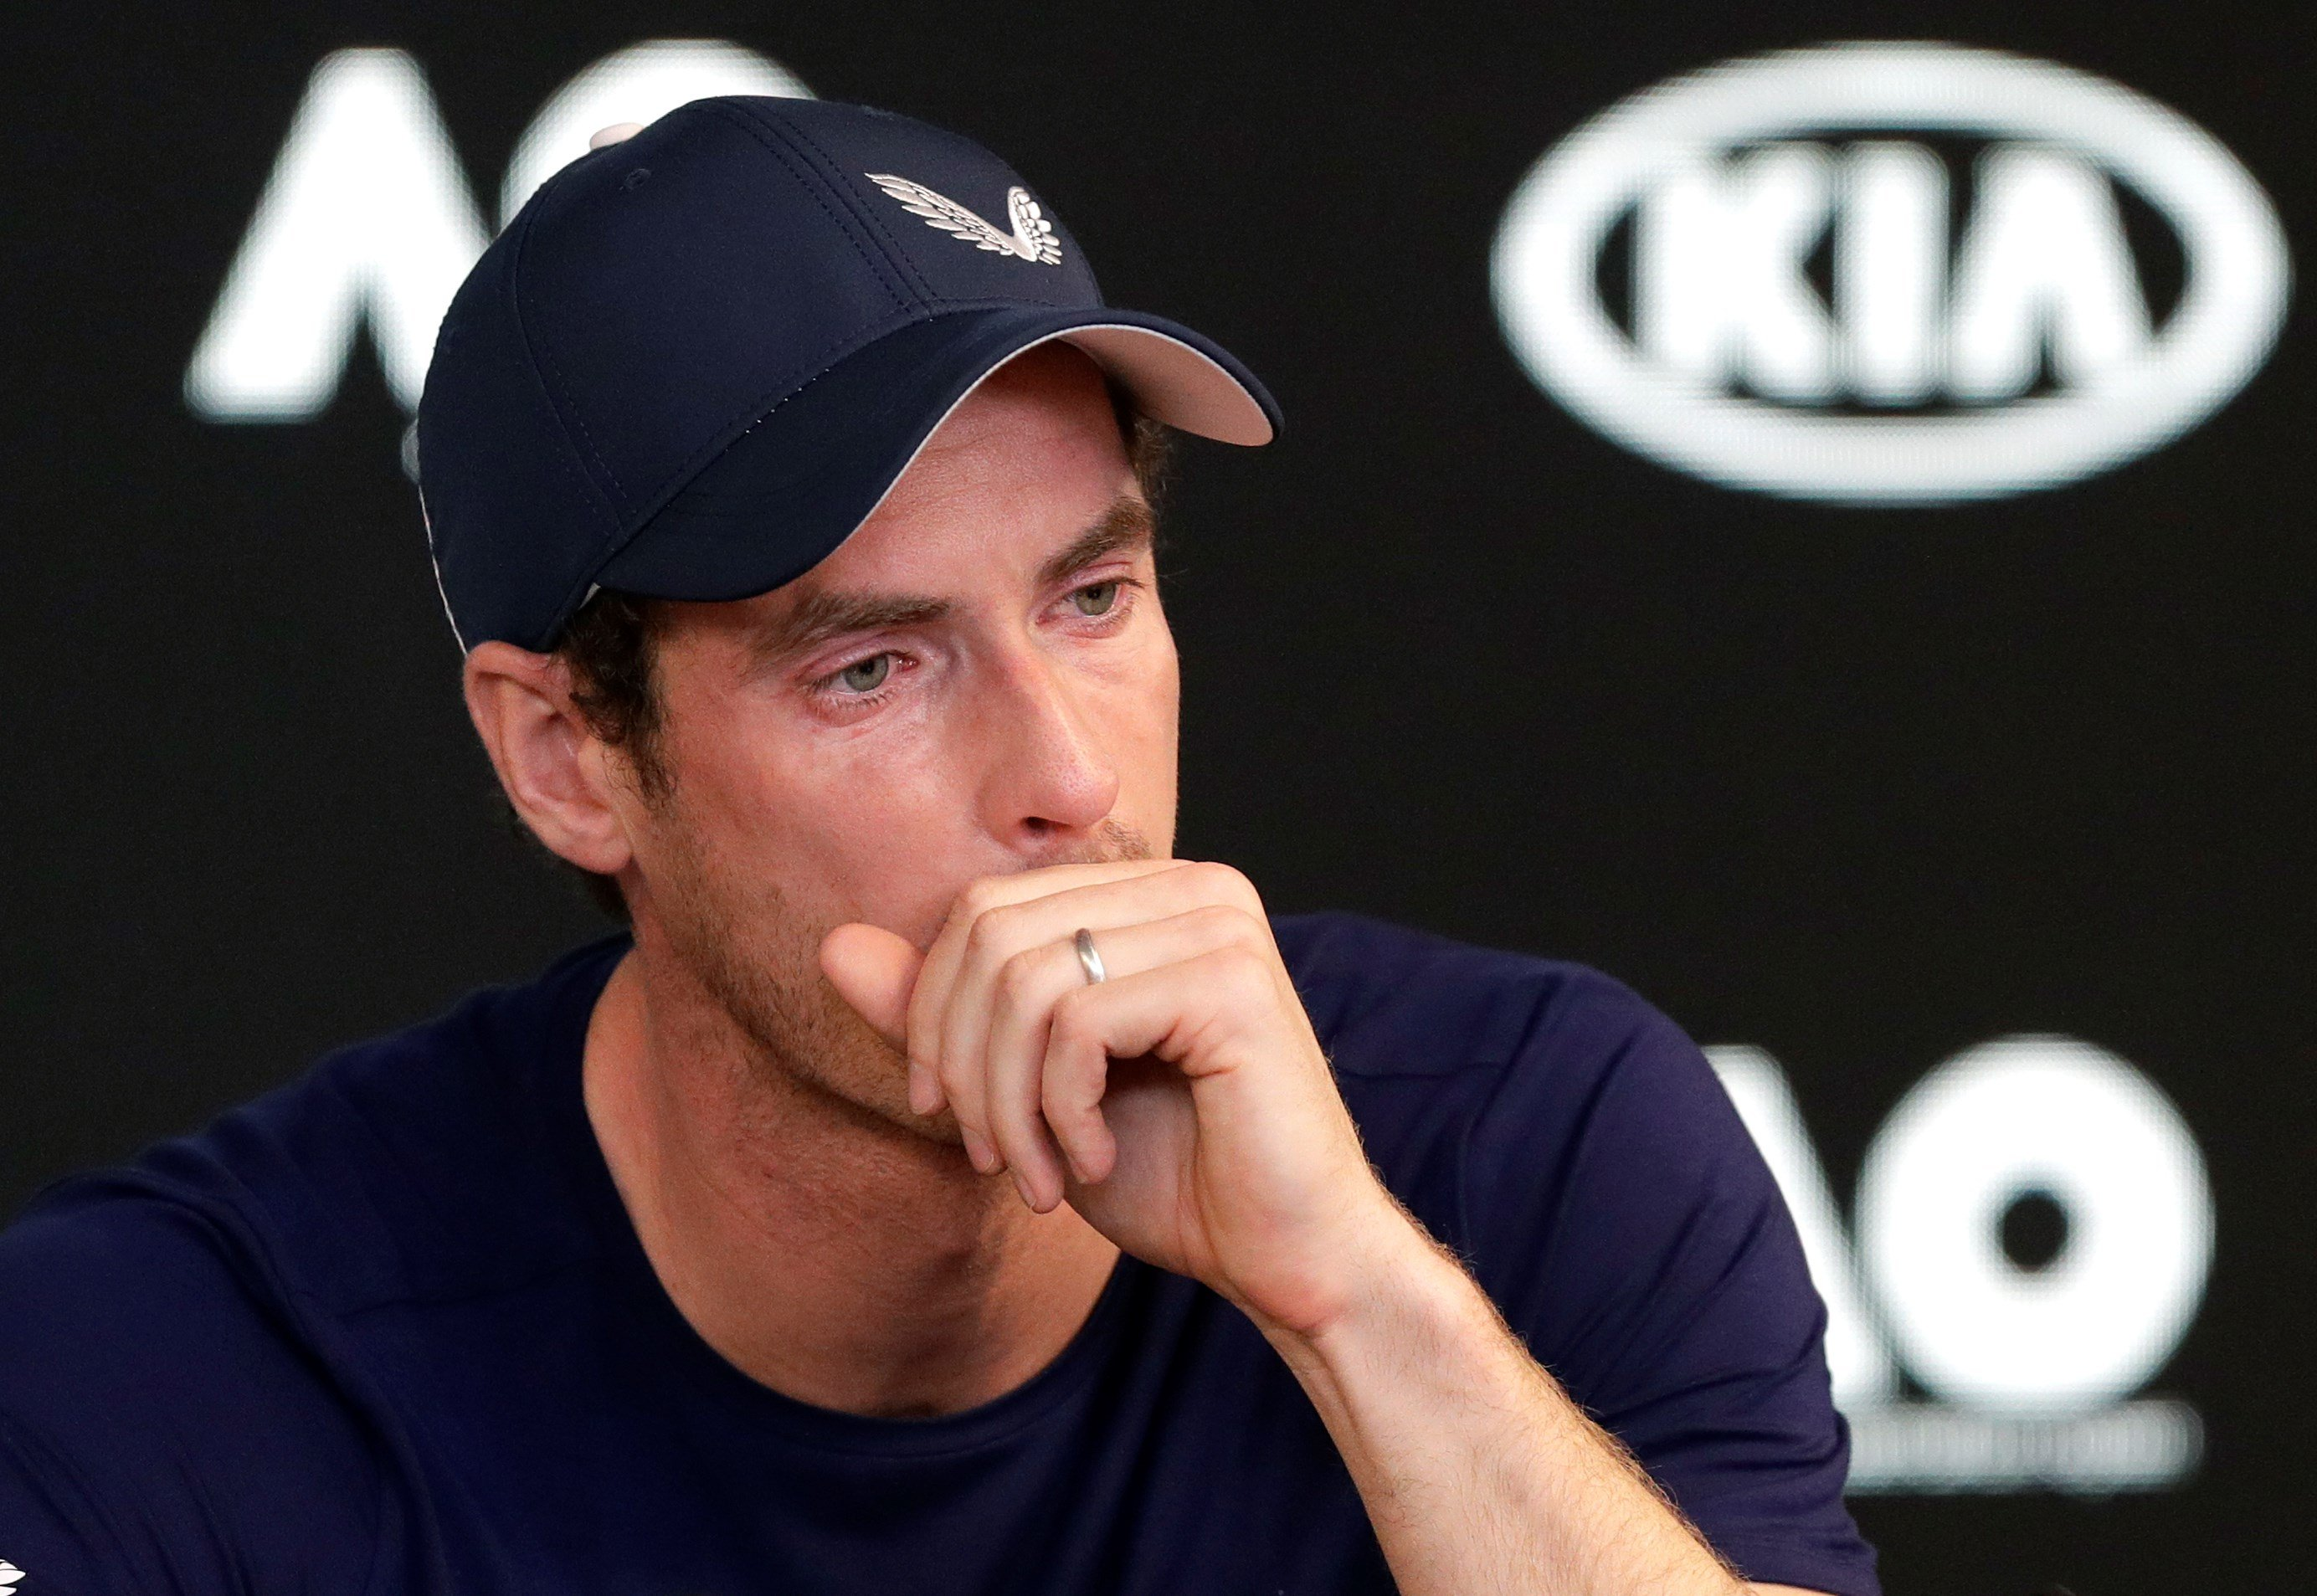 Altro intervento per Andy Murray